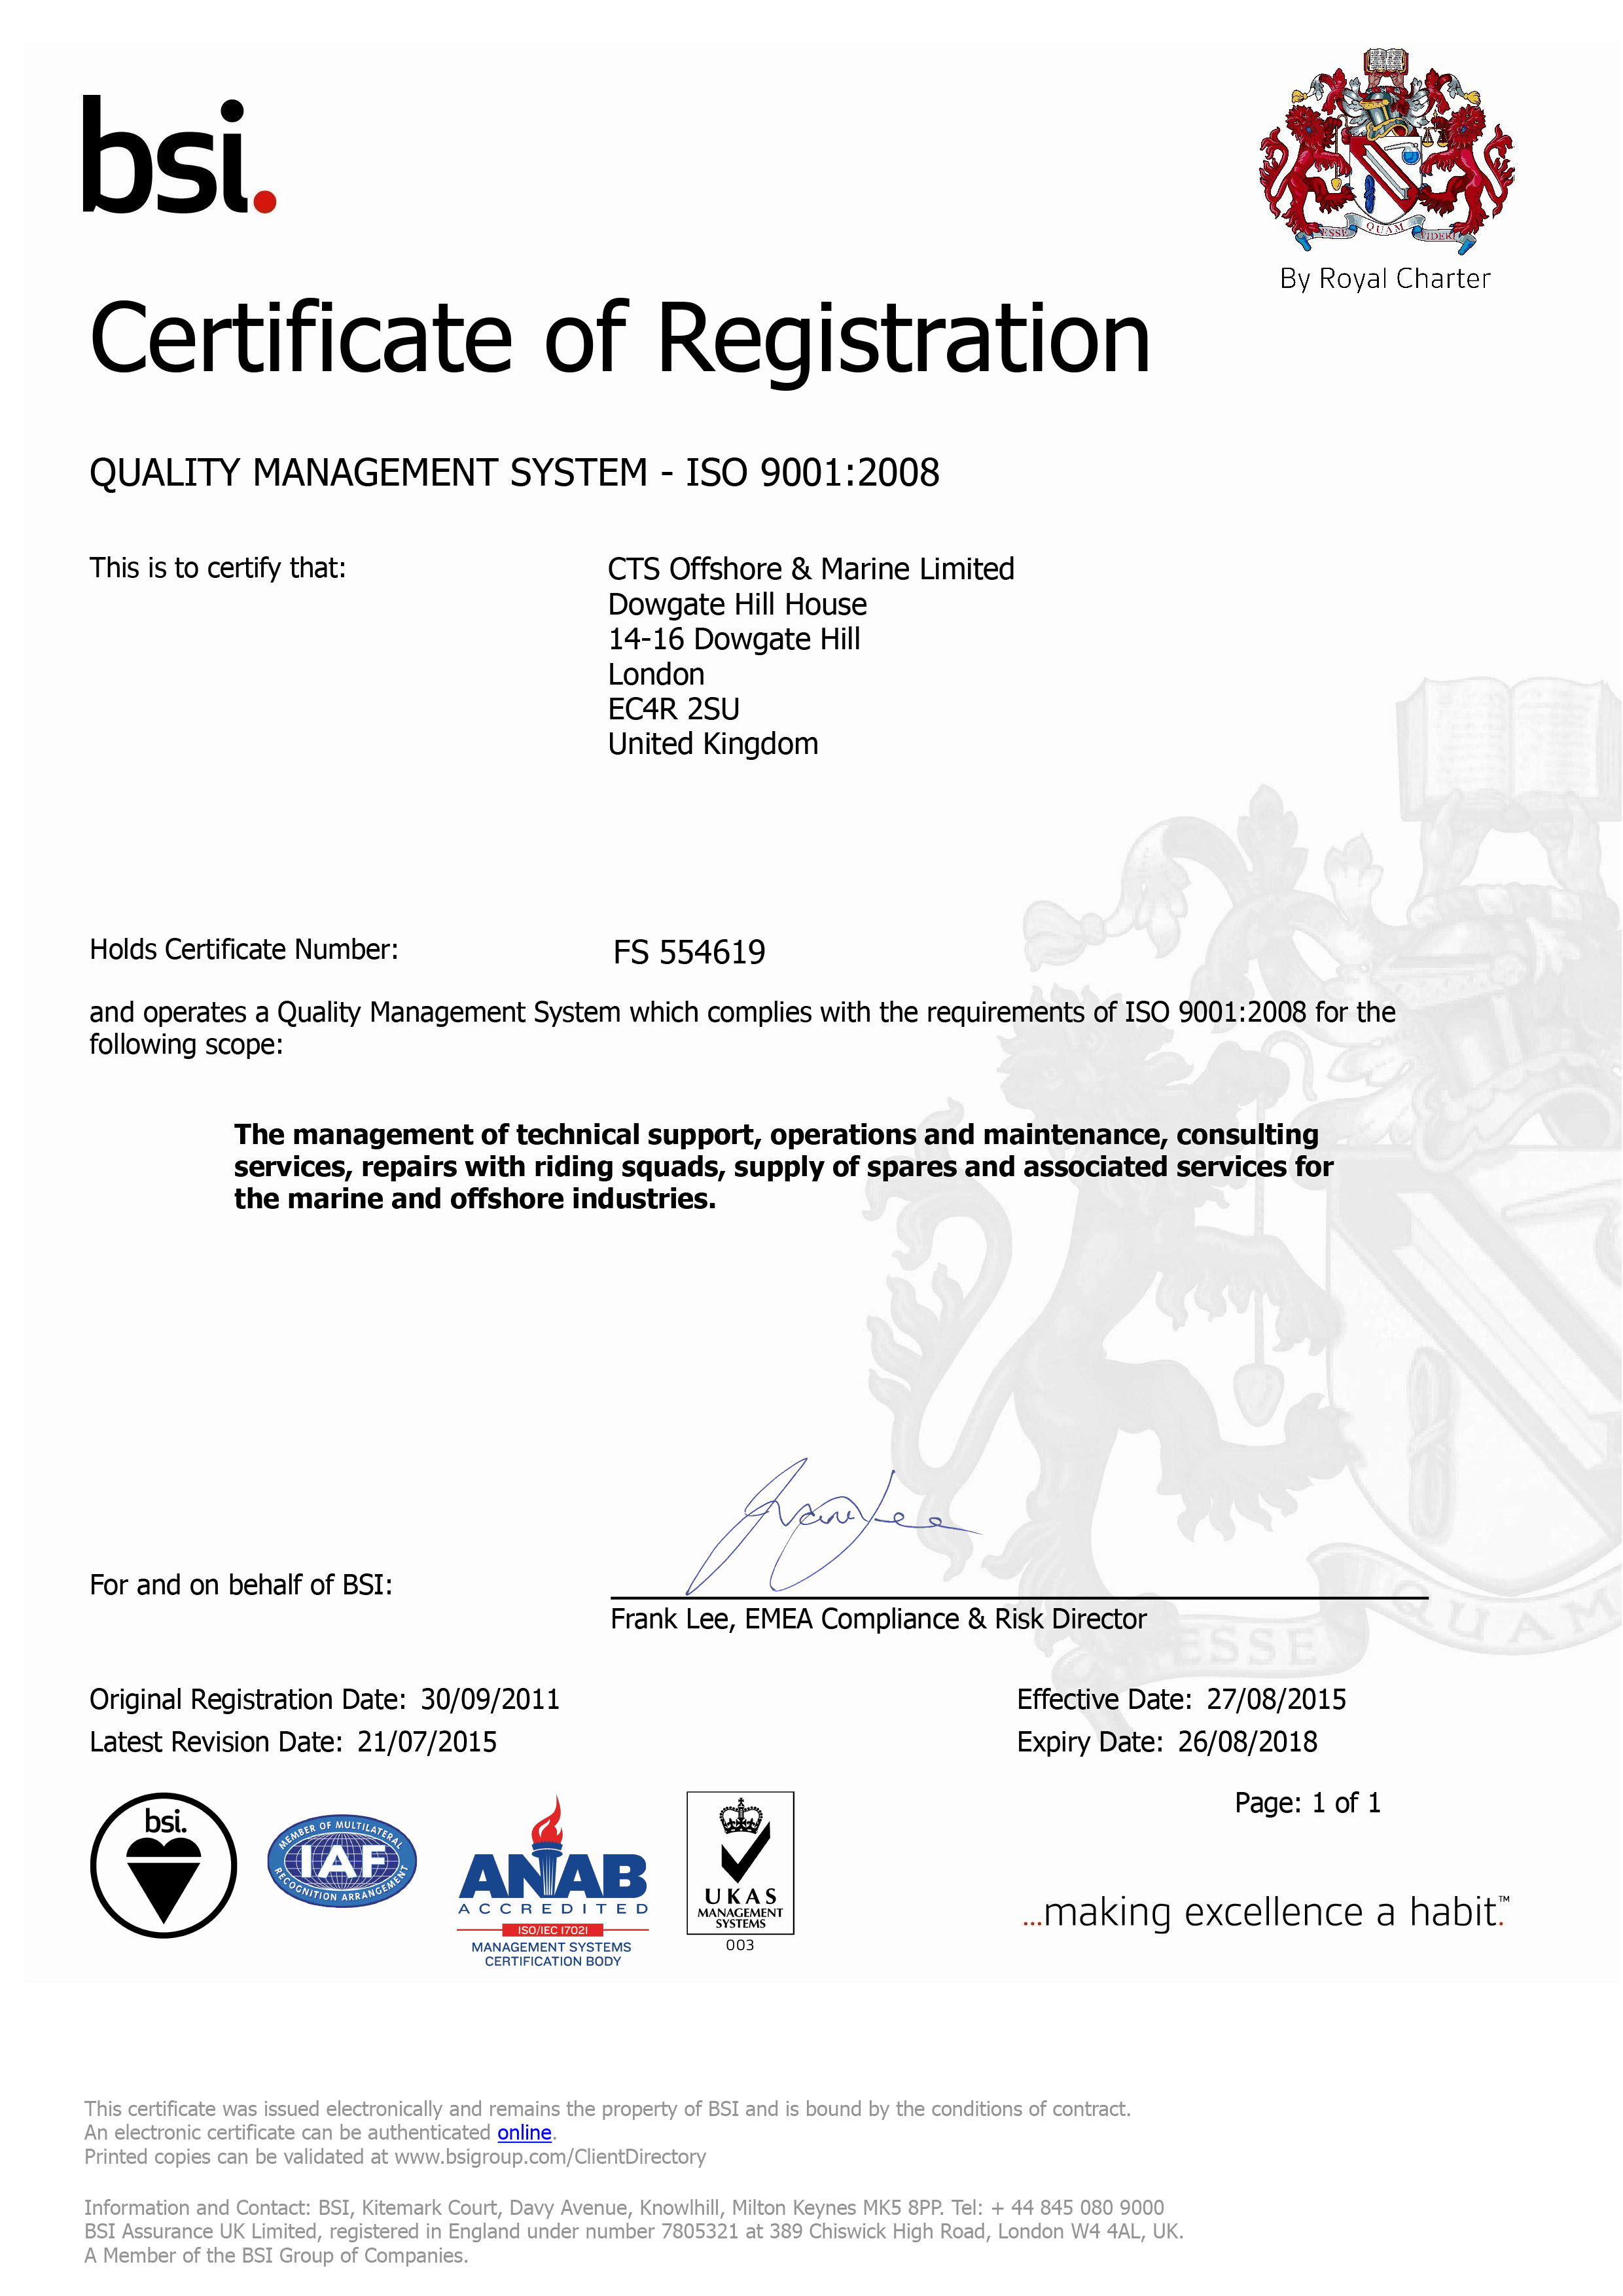 ISO 9001:2008 Certificate | CTS Offshore and Marine Limited